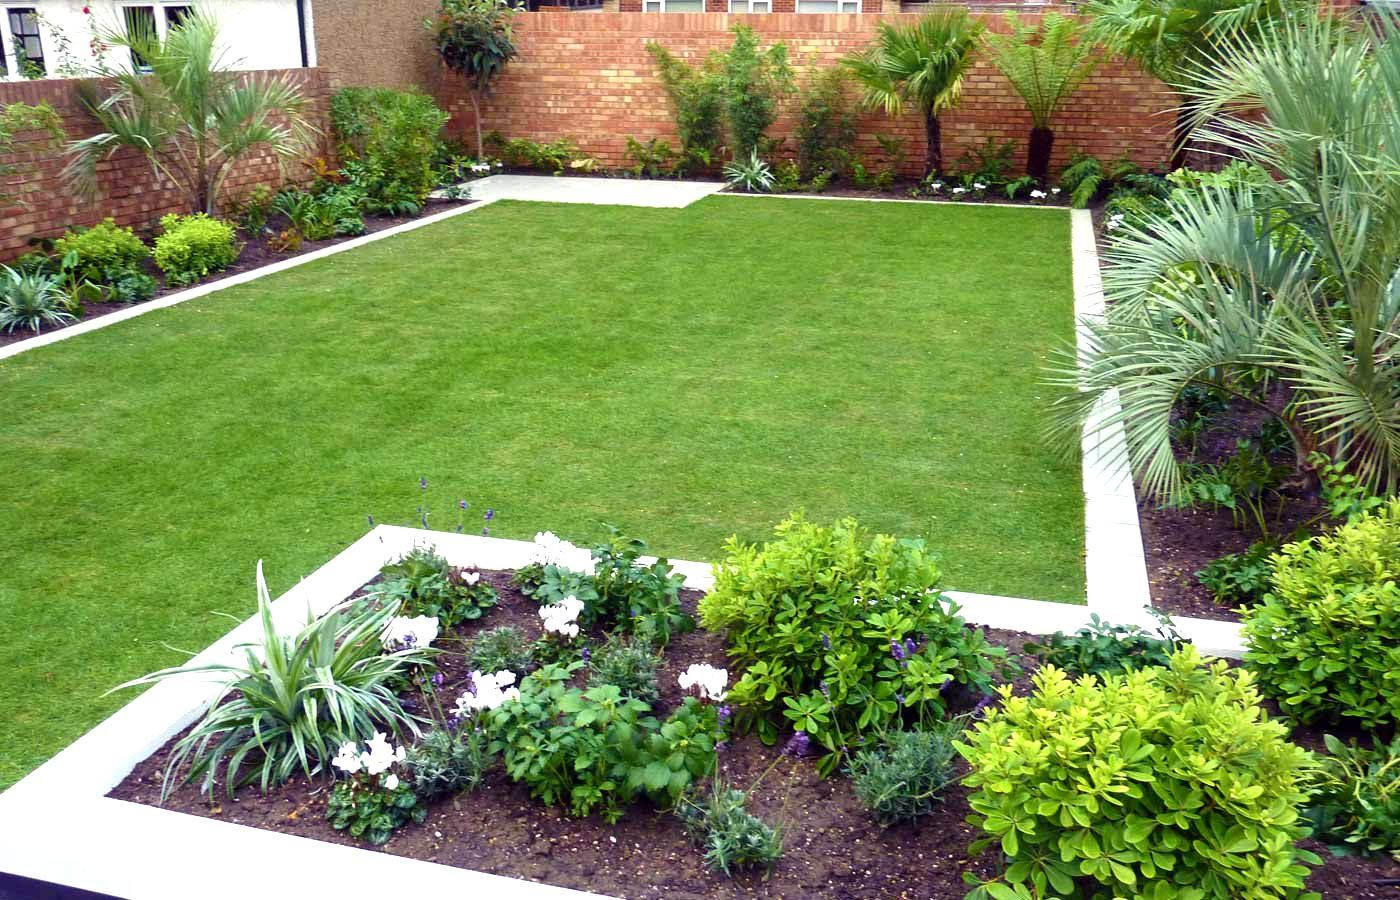 Simple garden designs no fret small garden design for Garden design plans